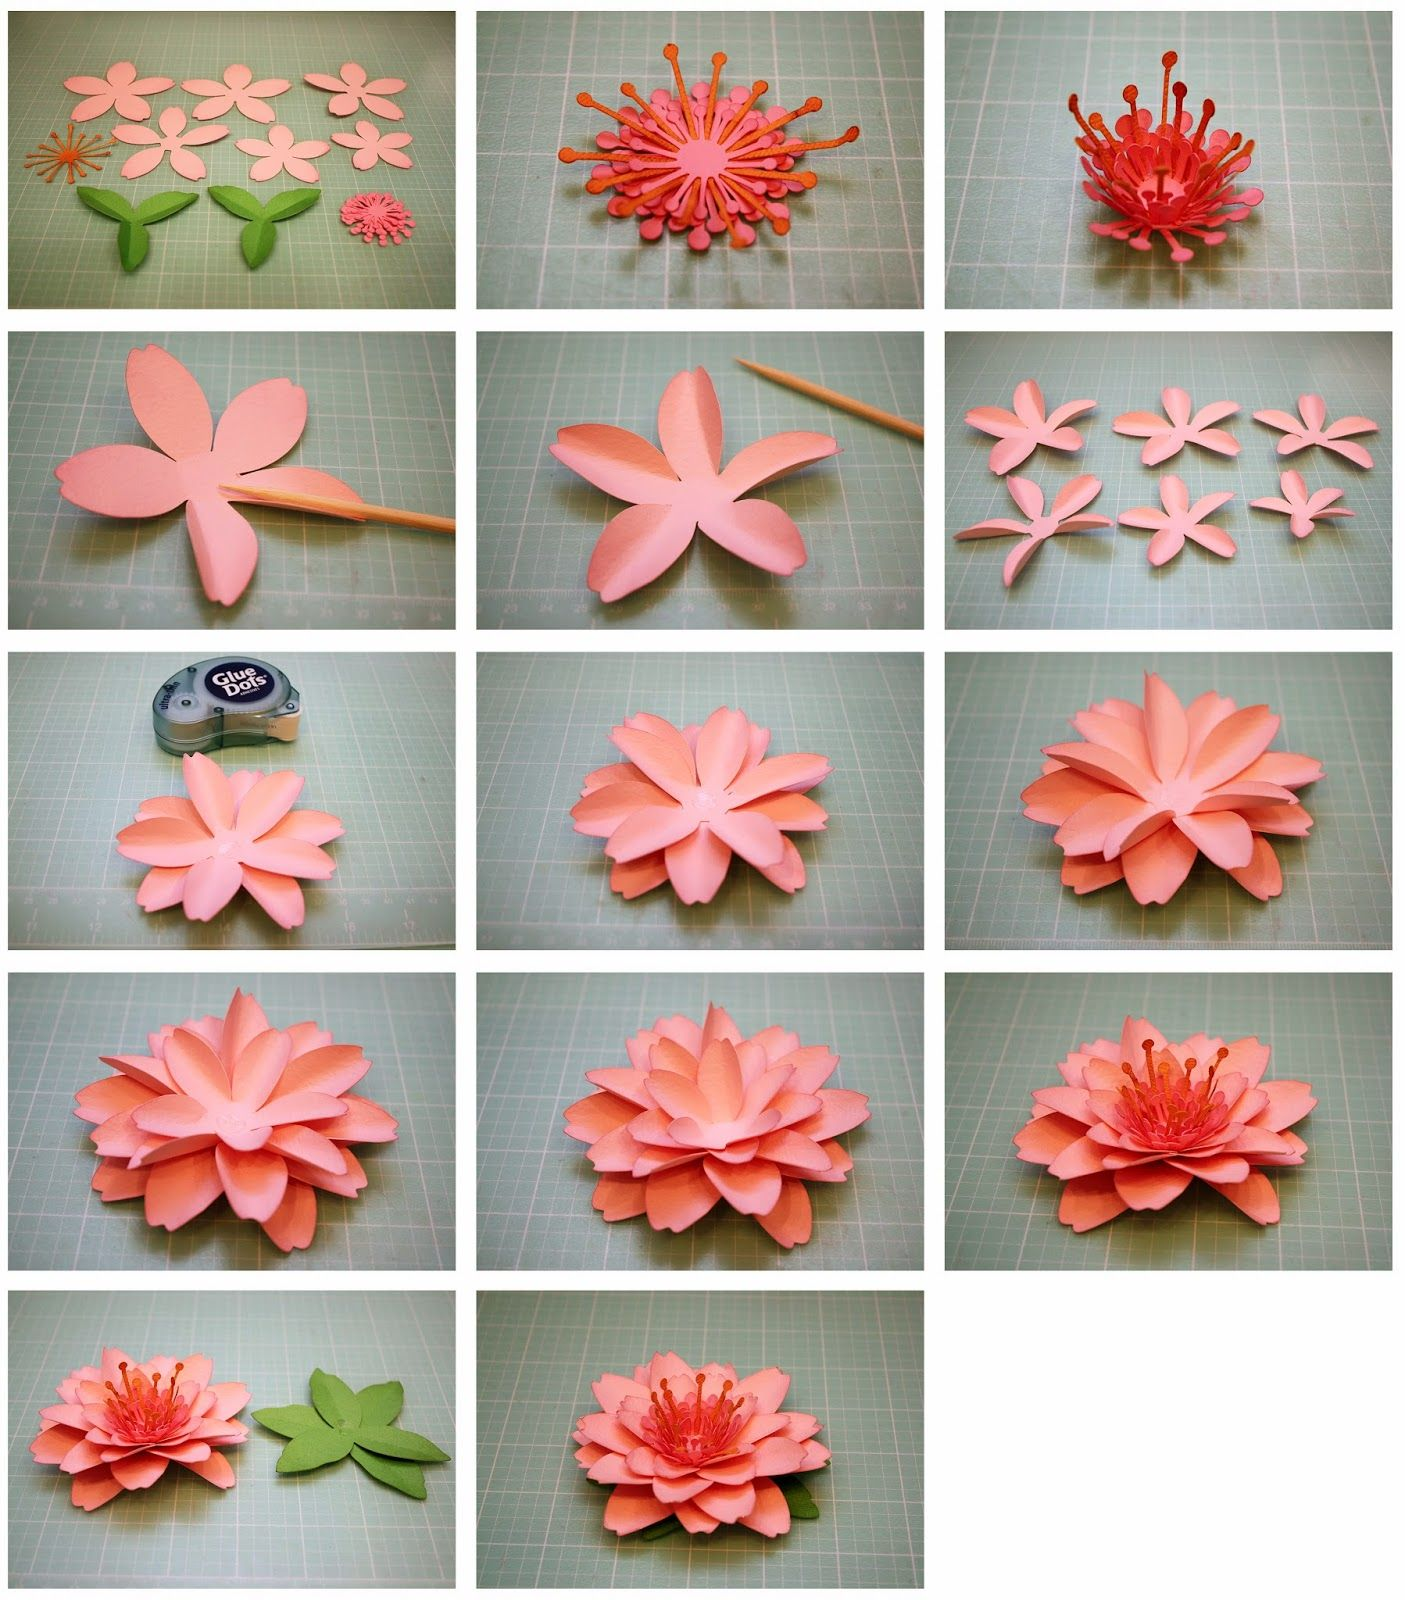 Bits of Paper: Cherry Blossom 3D Paper Flowers #paperflowers